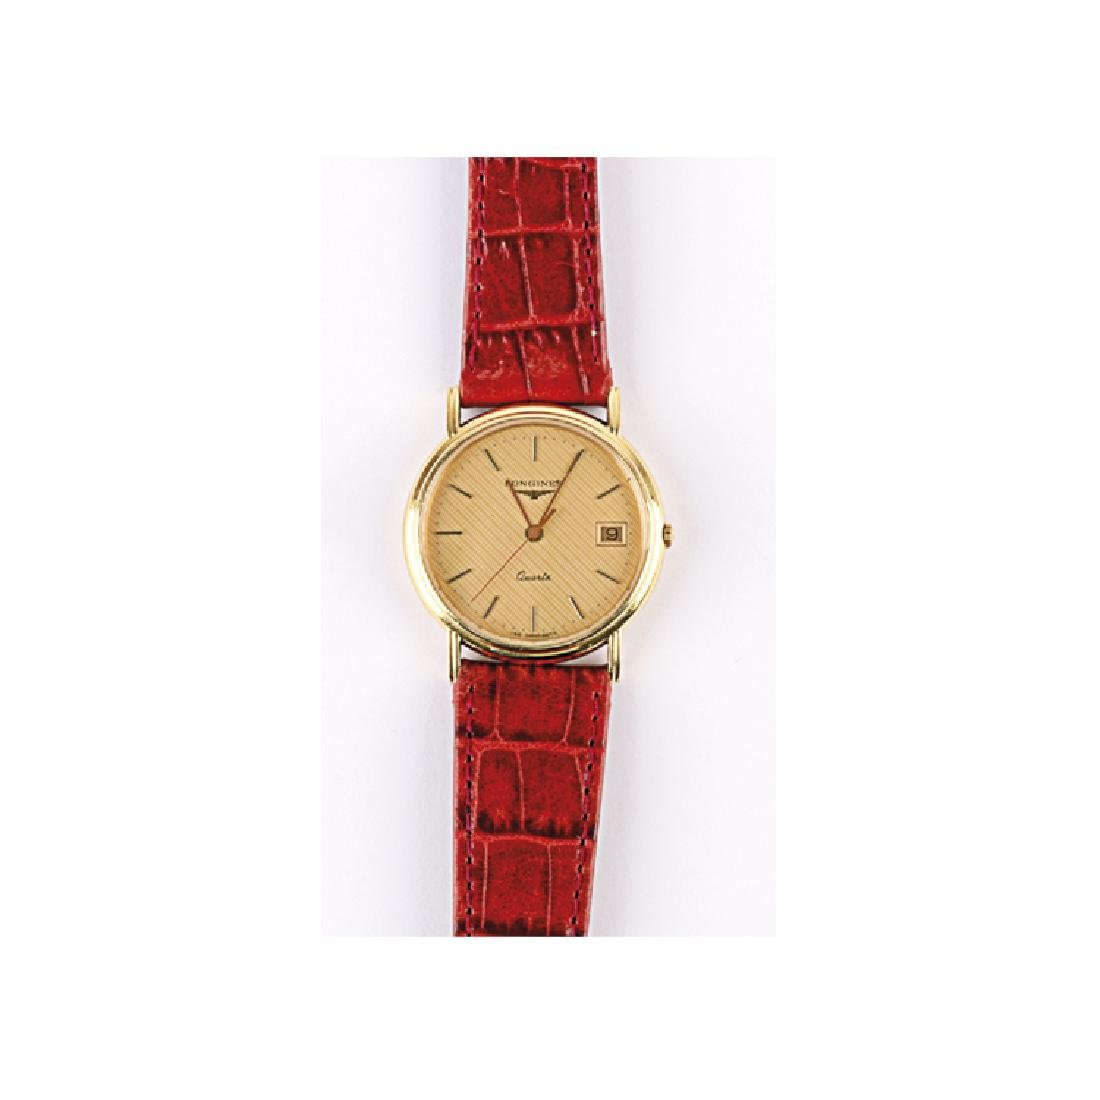 Watch Longines Oro quartz crocodile strap